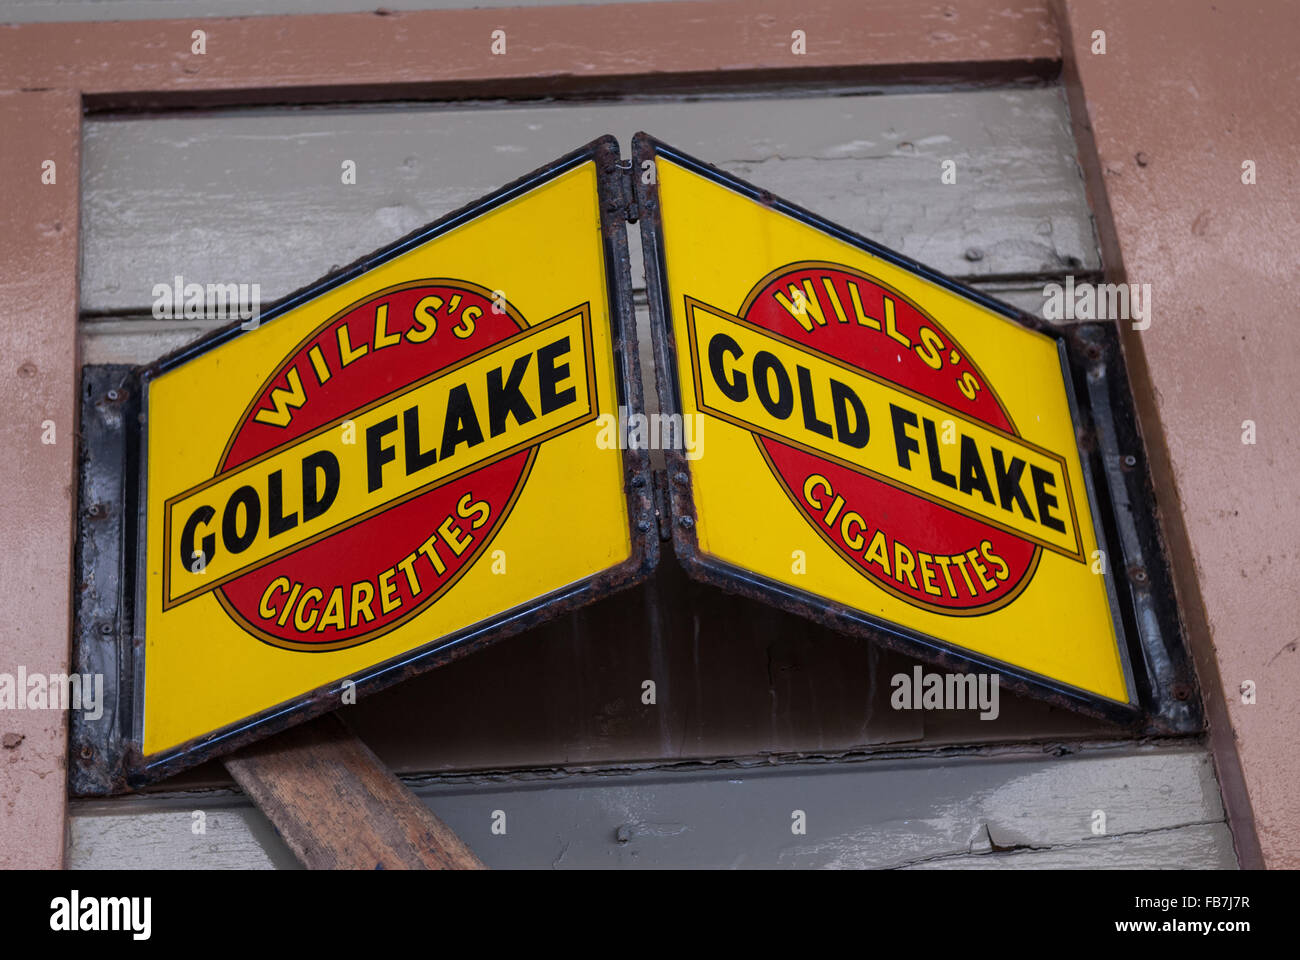 Vintage enameled advertising plaque mounted on timber boards. Advertising Will's Gold Flake cigarettes - Stock Image